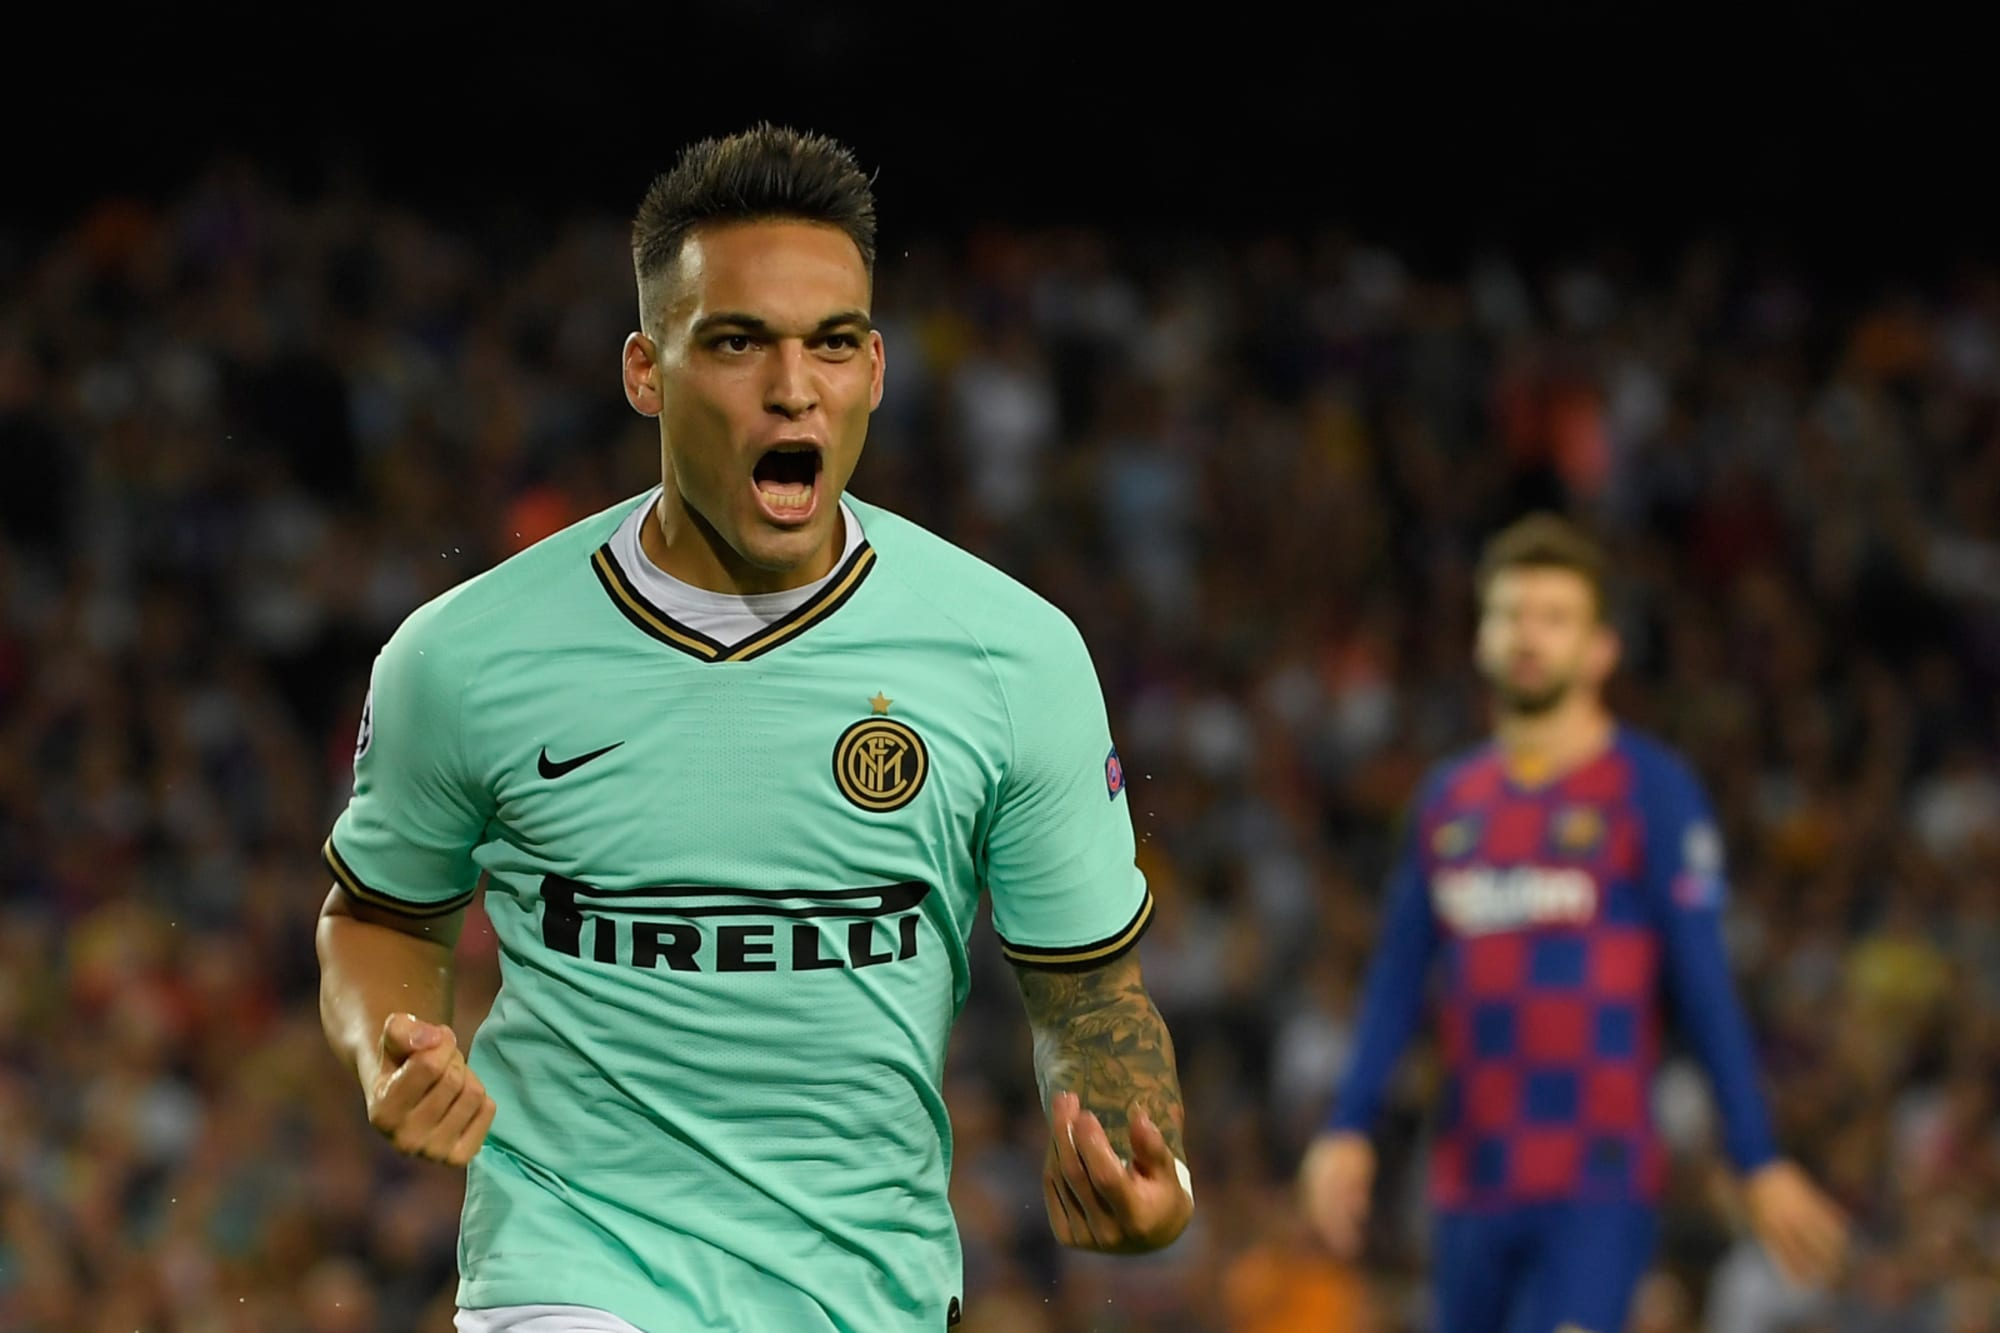 Inter Milan demand Barcelona superstar in a final take it or leave it offer